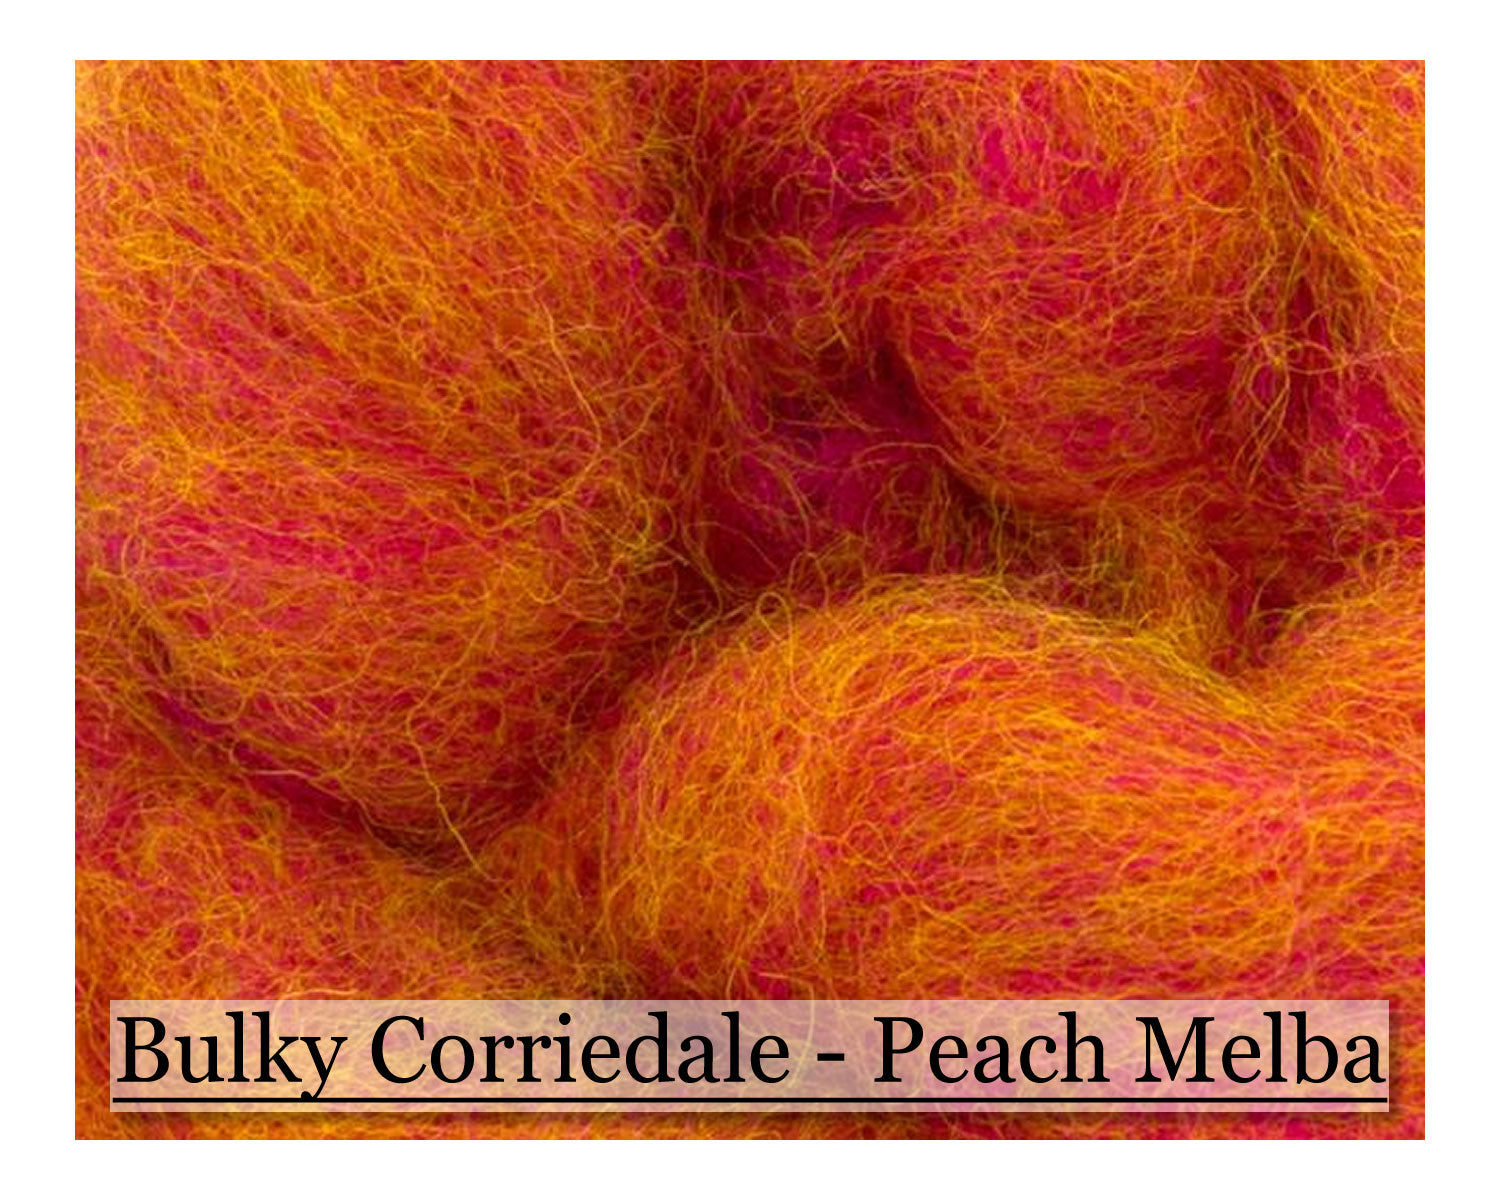 Peach Melba - Corriedale Wool